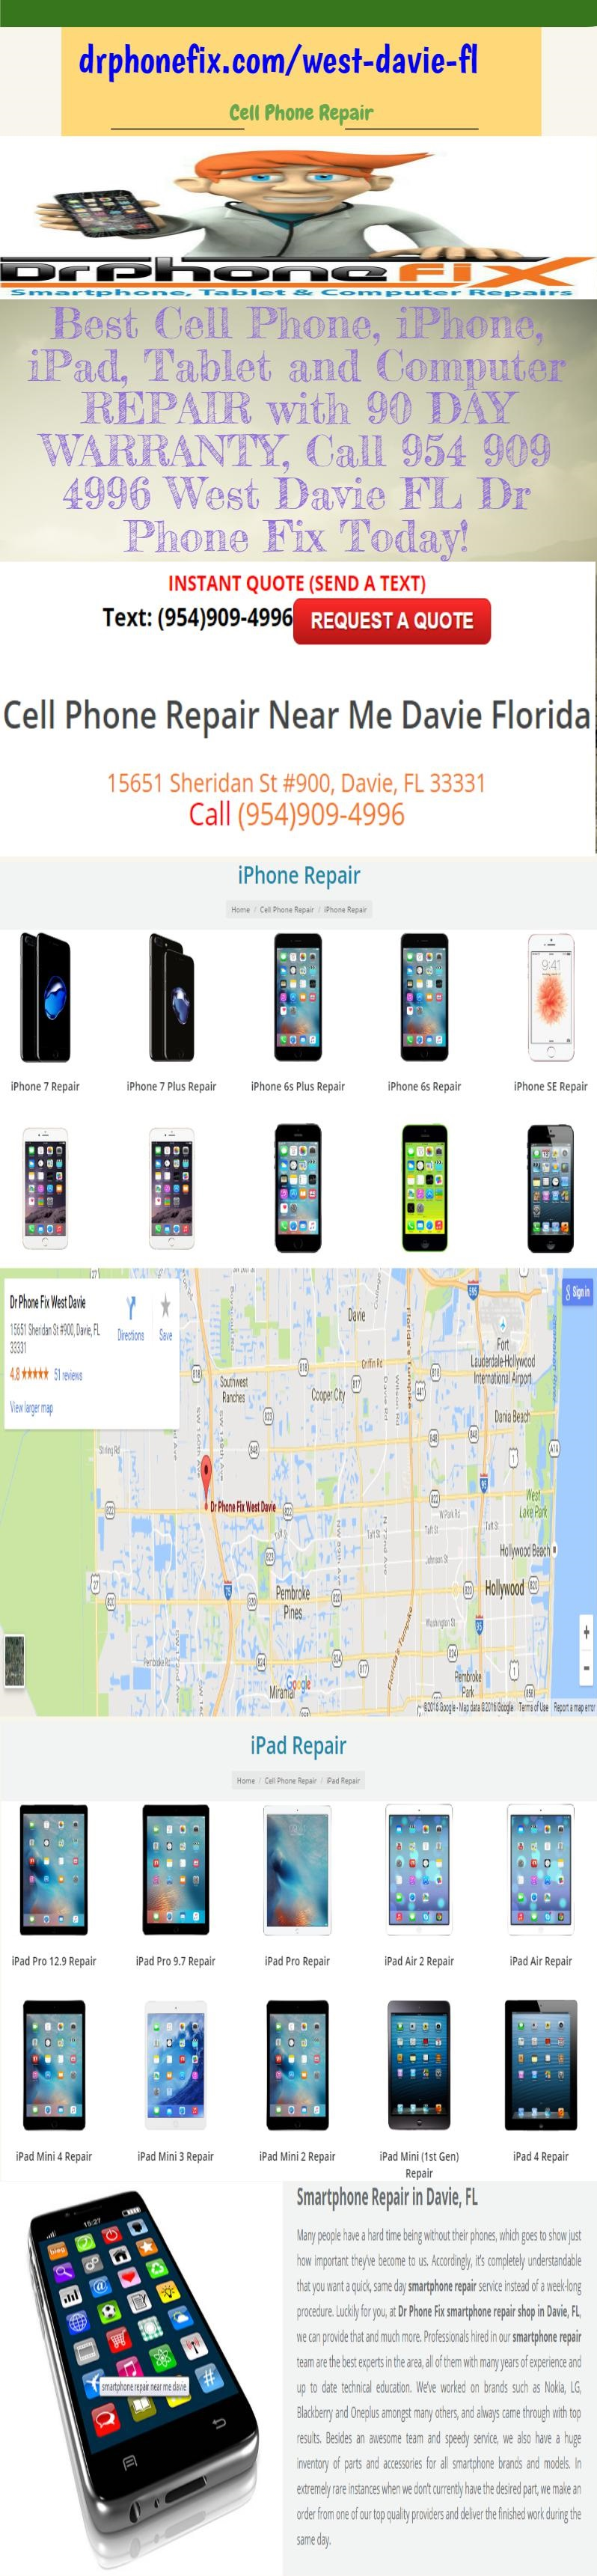 Davie Florida Map.Pin By Dr Phone Fix West Davie Florida On Dr Phone Fix West Davie